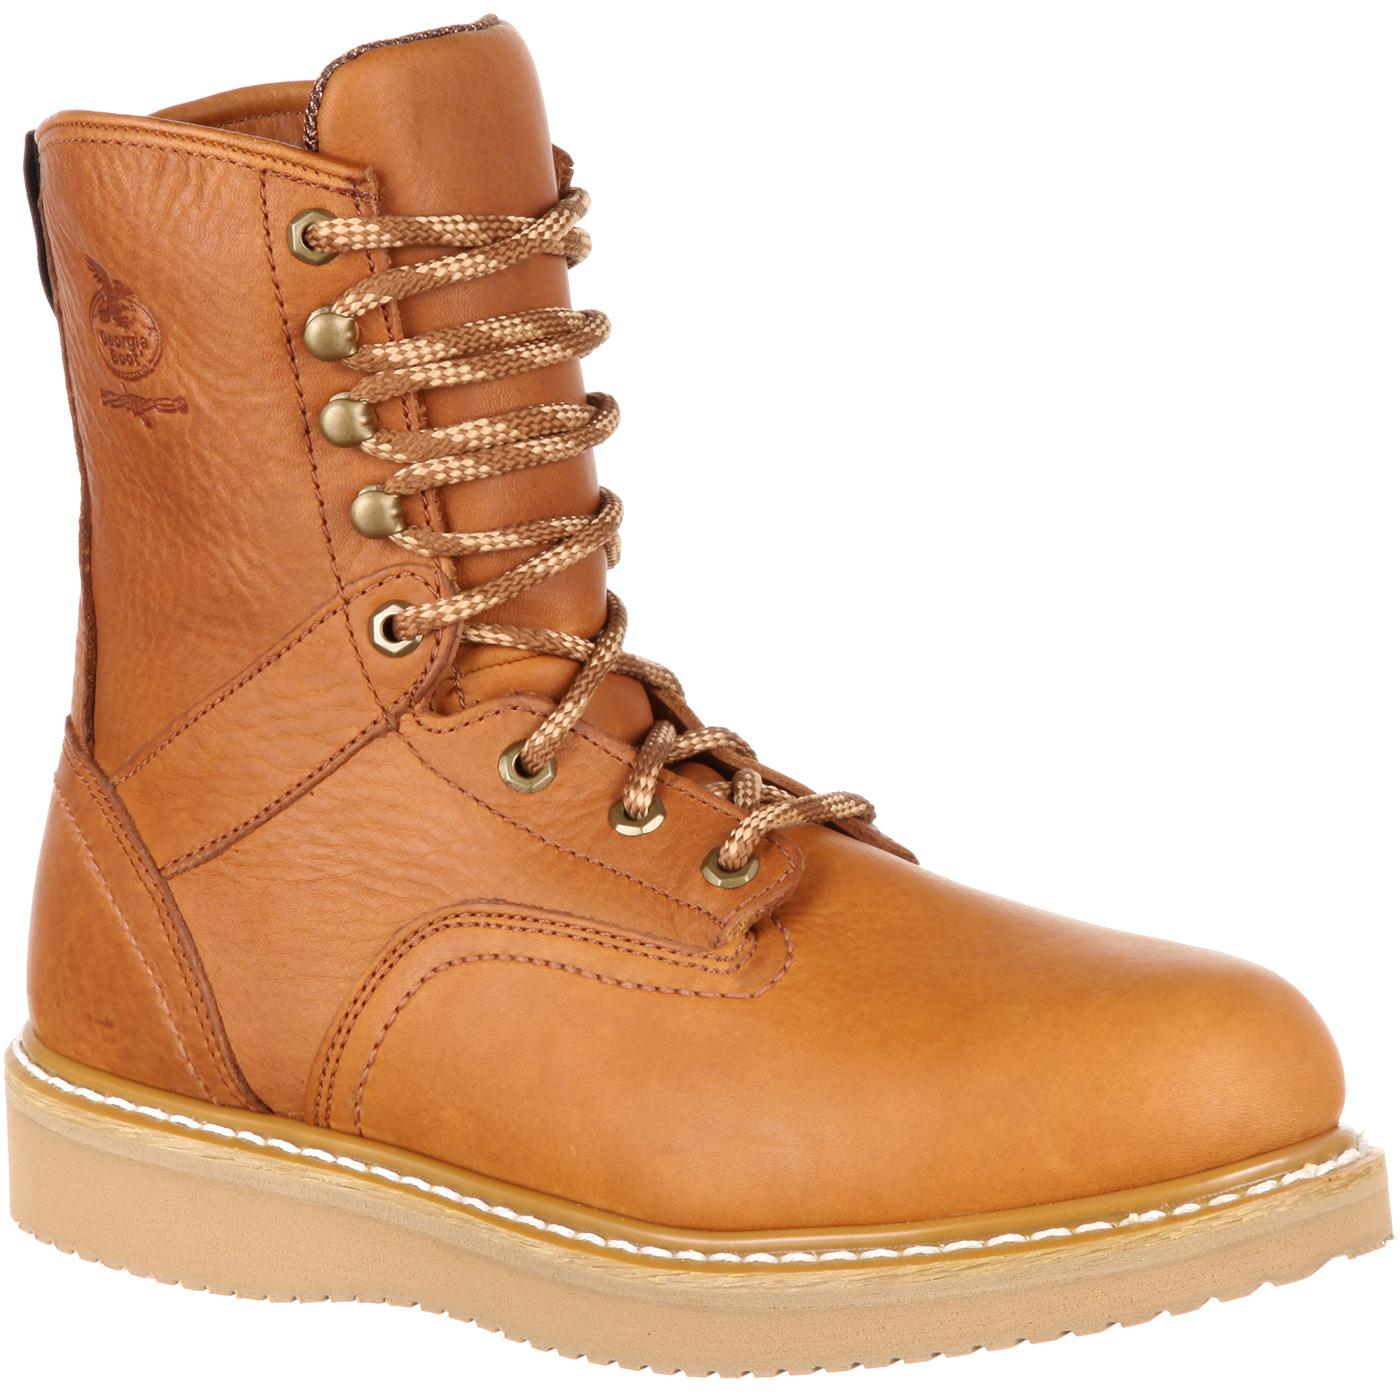 Georgia Boot: Men's 8